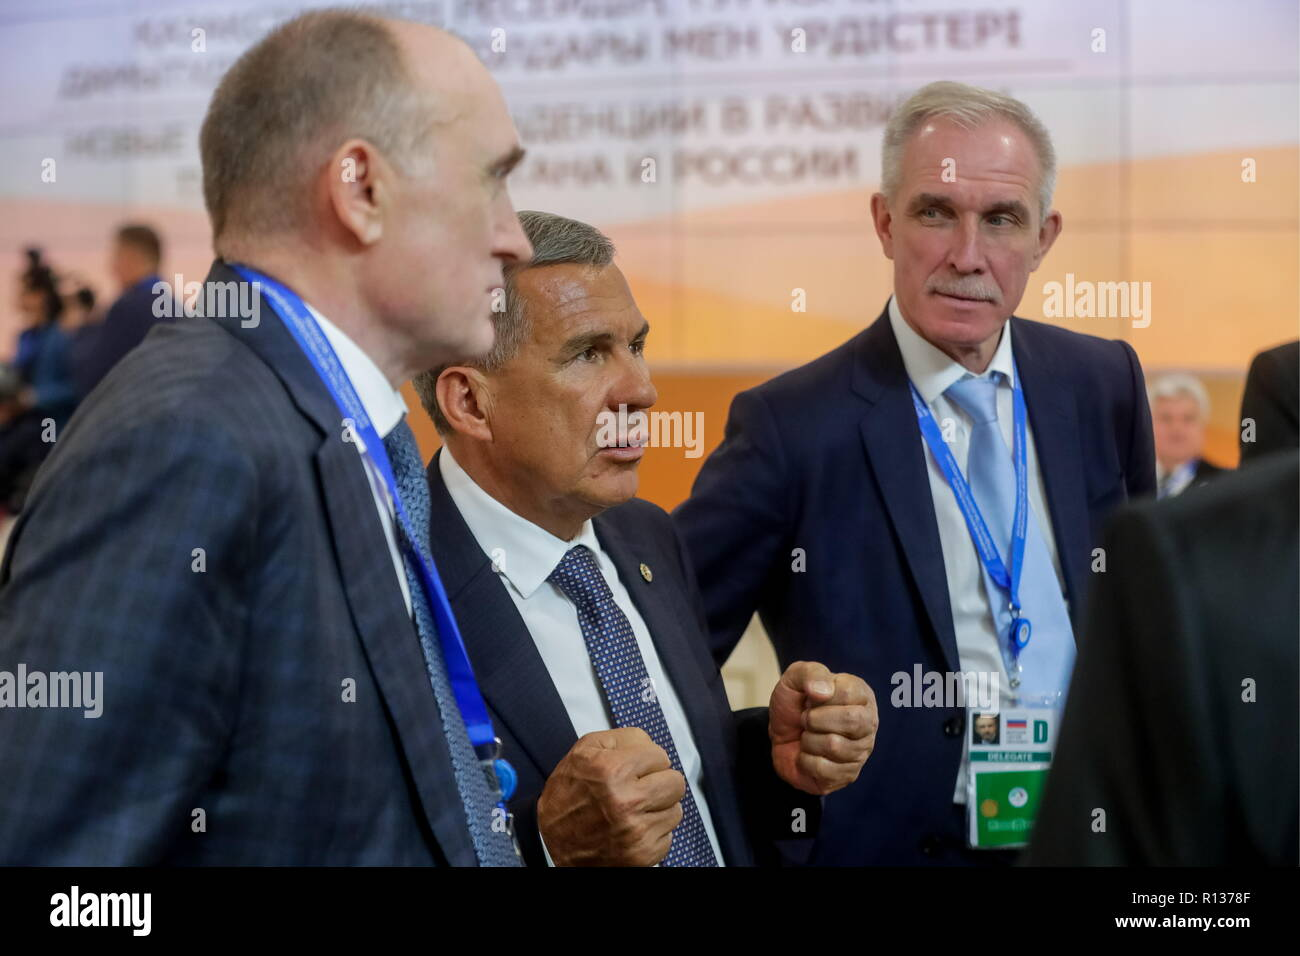 Petropavlovsk, Kazakhstan. 09th Nov, 2018. PETROPAVLOVSK, KAZAKHSTAN - NOVEMBER 9, 2018: The Governor of Russia's Chelyabinsk Region Boris Dubrovsky (L), the President of Russia's Republic of Tatarstan Rustam Minnikhanov (C), and the Governor of Russia's Ulyanovsk Region Sergei Morozov before a plenary meeting at the 15th Russia-Kazakhstan Interregional Cooperation Forum, in Petropavlovsk (Petropavl), North Kazakhstan Region. Mikhail Metzel/TASS Credit: ITAR-TASS News Agency/Alamy Live News - Stock Image